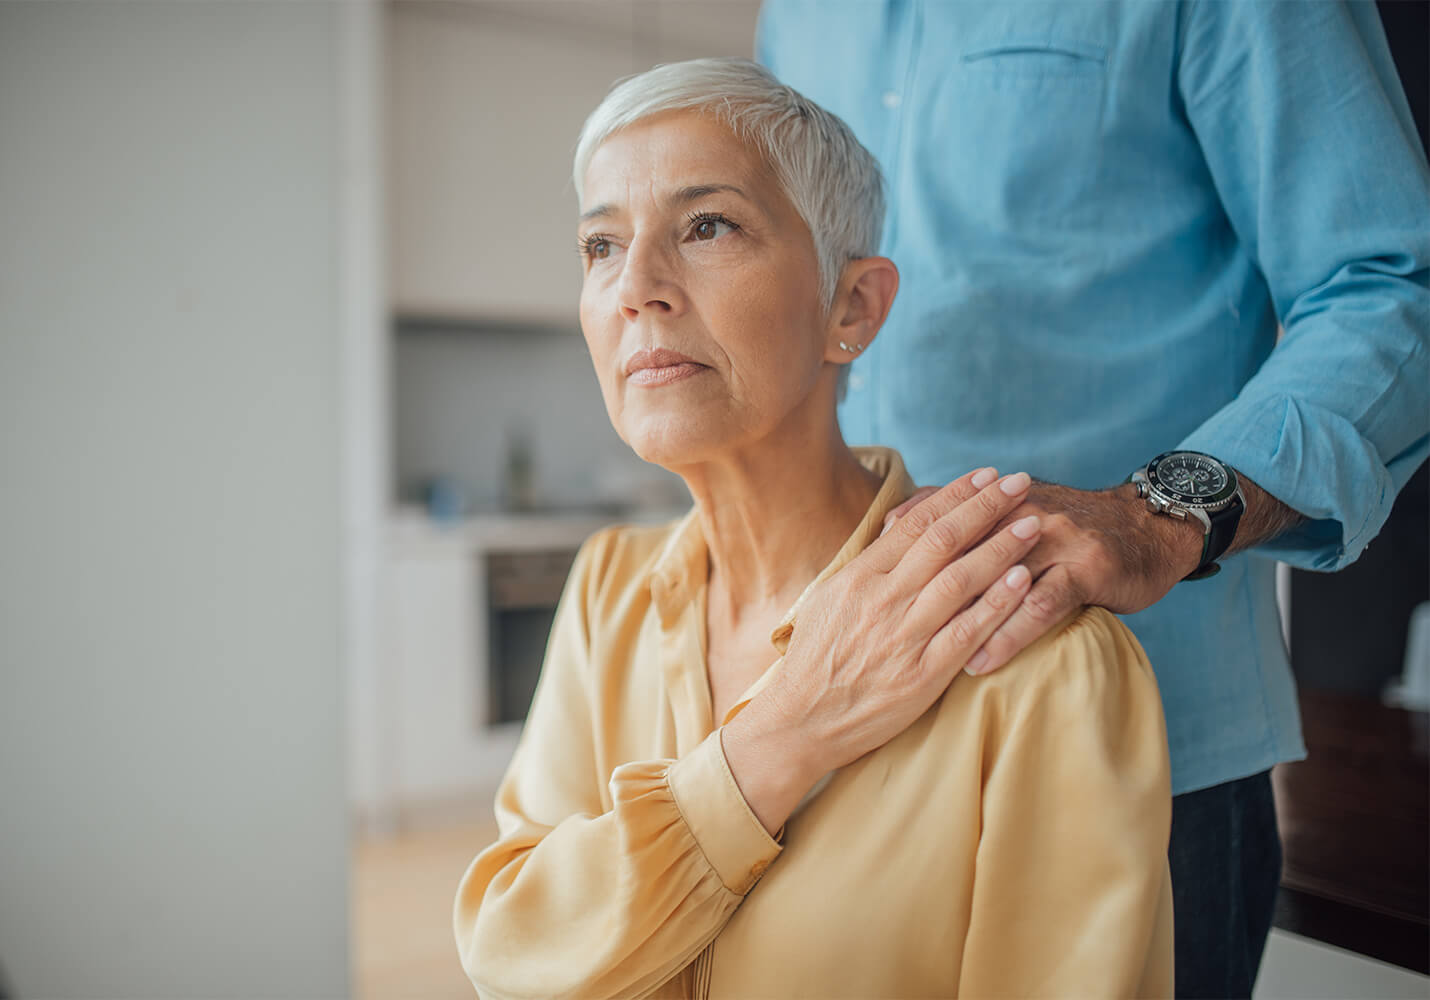 Concerned woman being comforted